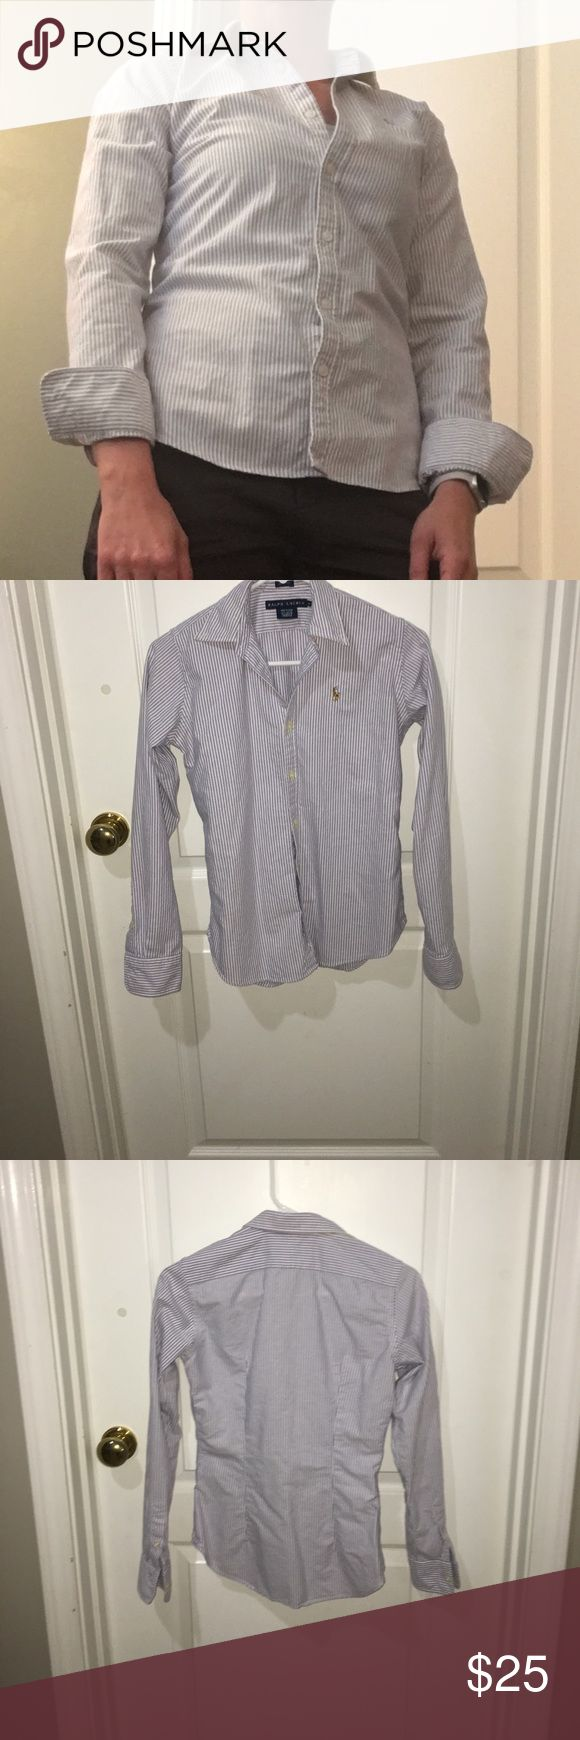 Slim Fit Striped Ralph Lauren Button Down Shirt This Ralph Lauren Striped Button Down Shirt is in EUC. In classic slim fit perfect to wear buttoned up for the office, but equally stylish to wear unbuttoned with jeans or shorts. Ralph Lauren Tops Button Down Shirts